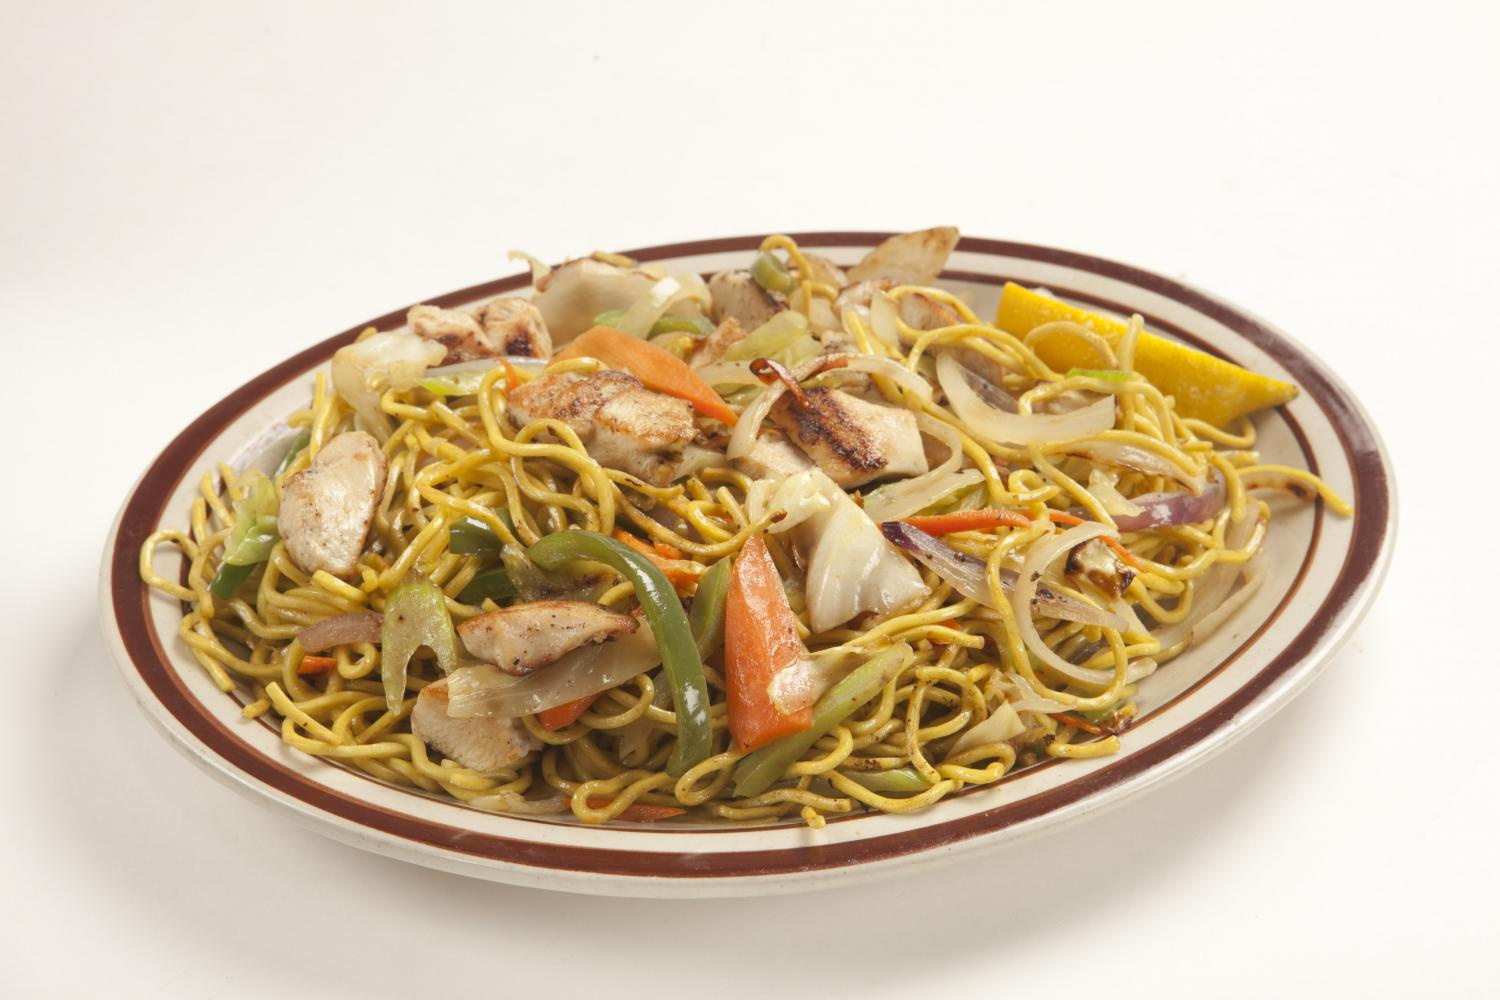 Chicken Fried Noodles 11.99